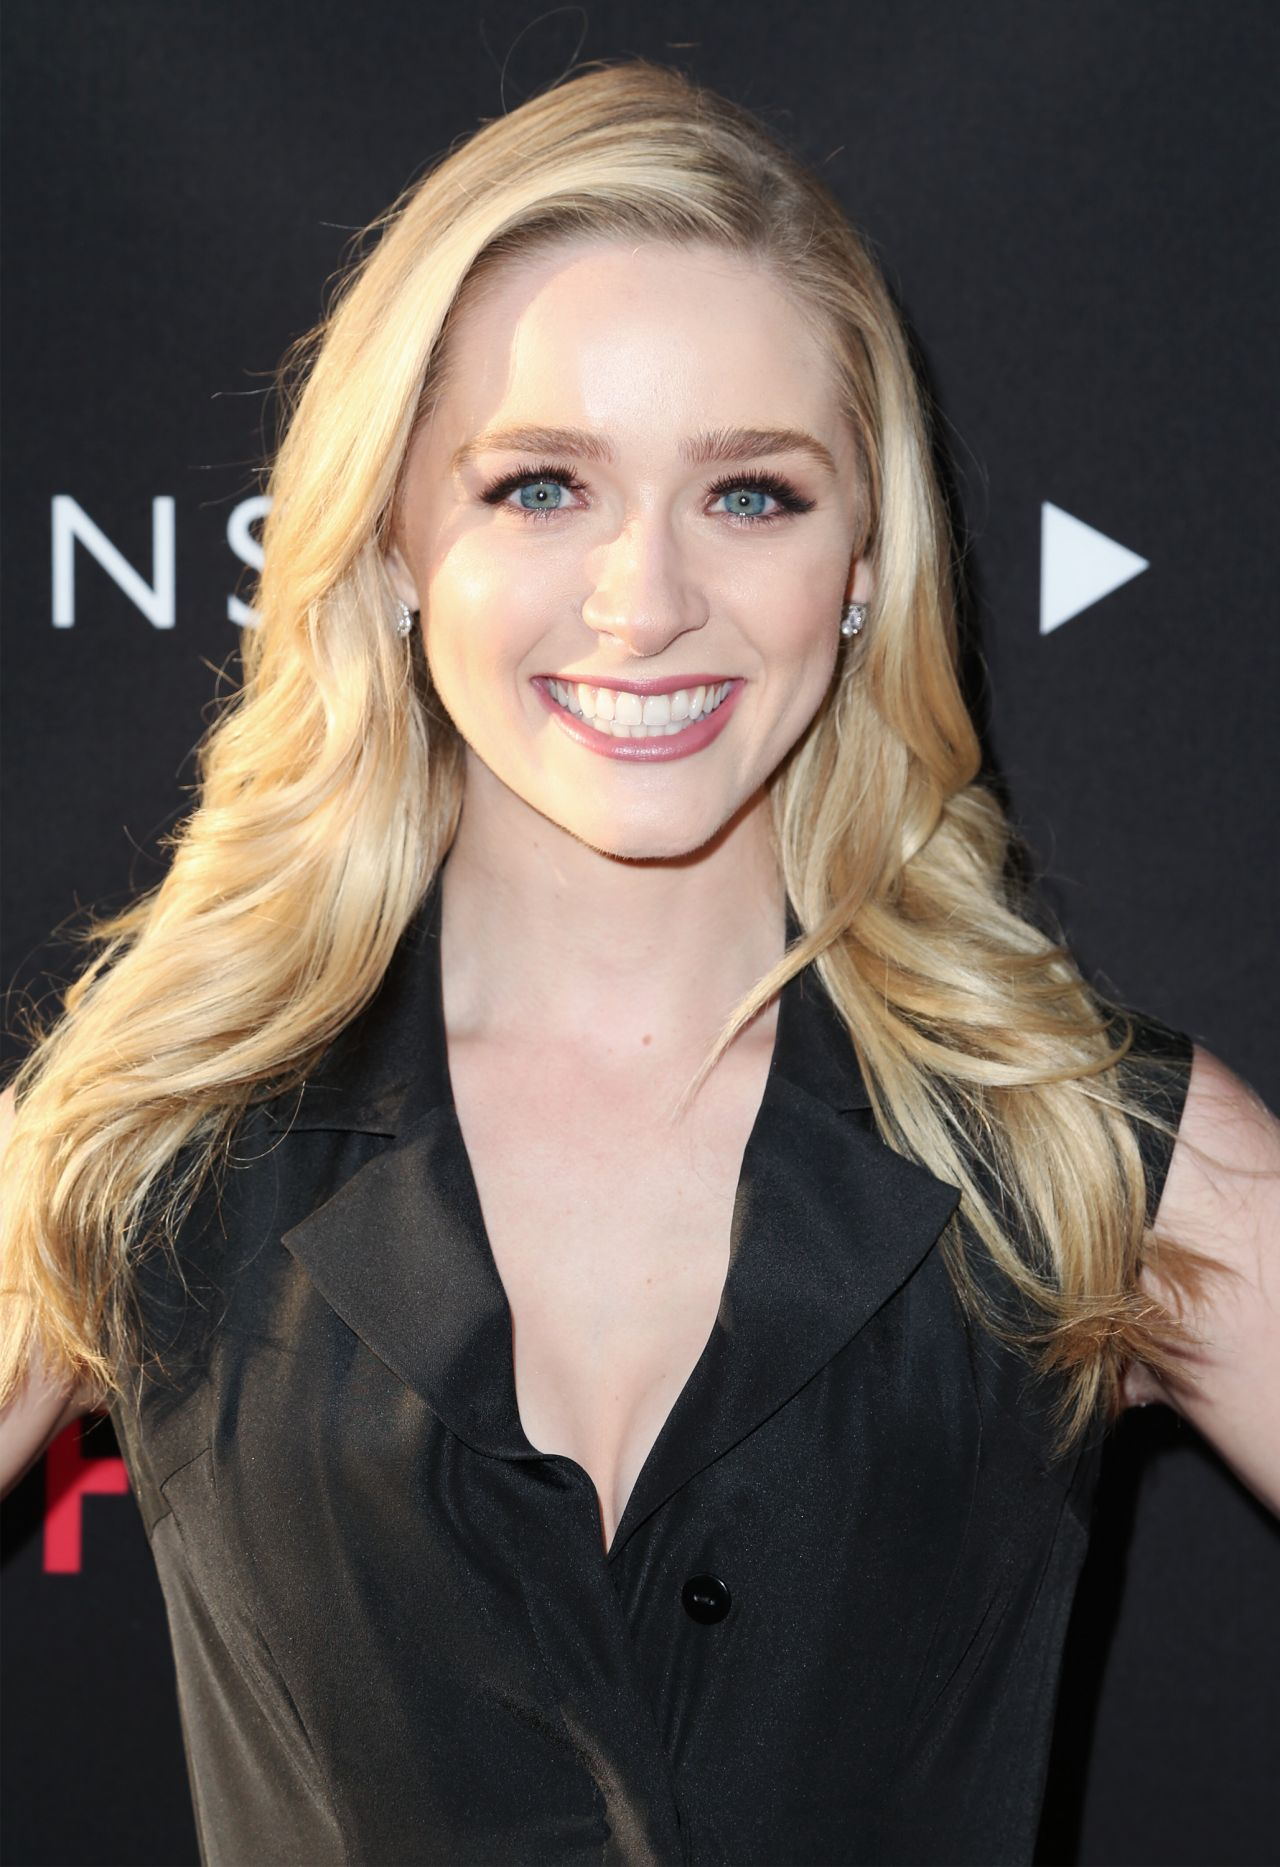 Hacked Greer Grammer  nudes (42 images), Twitter, see through